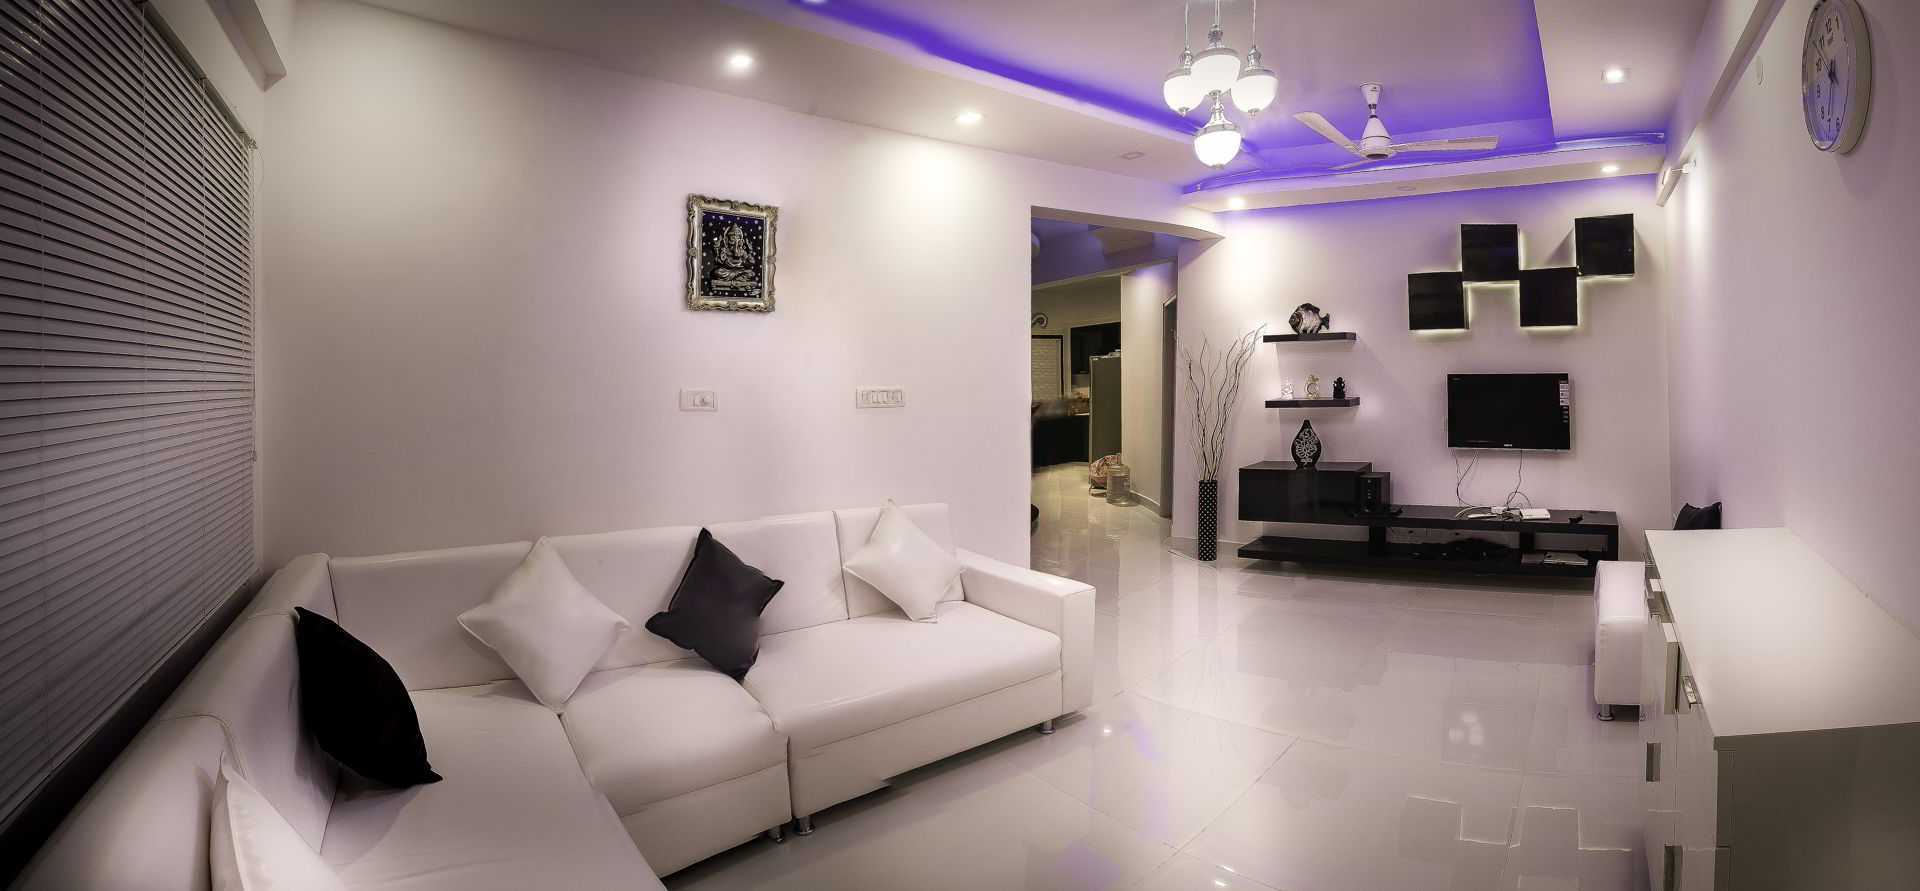 domestic lighting solutions